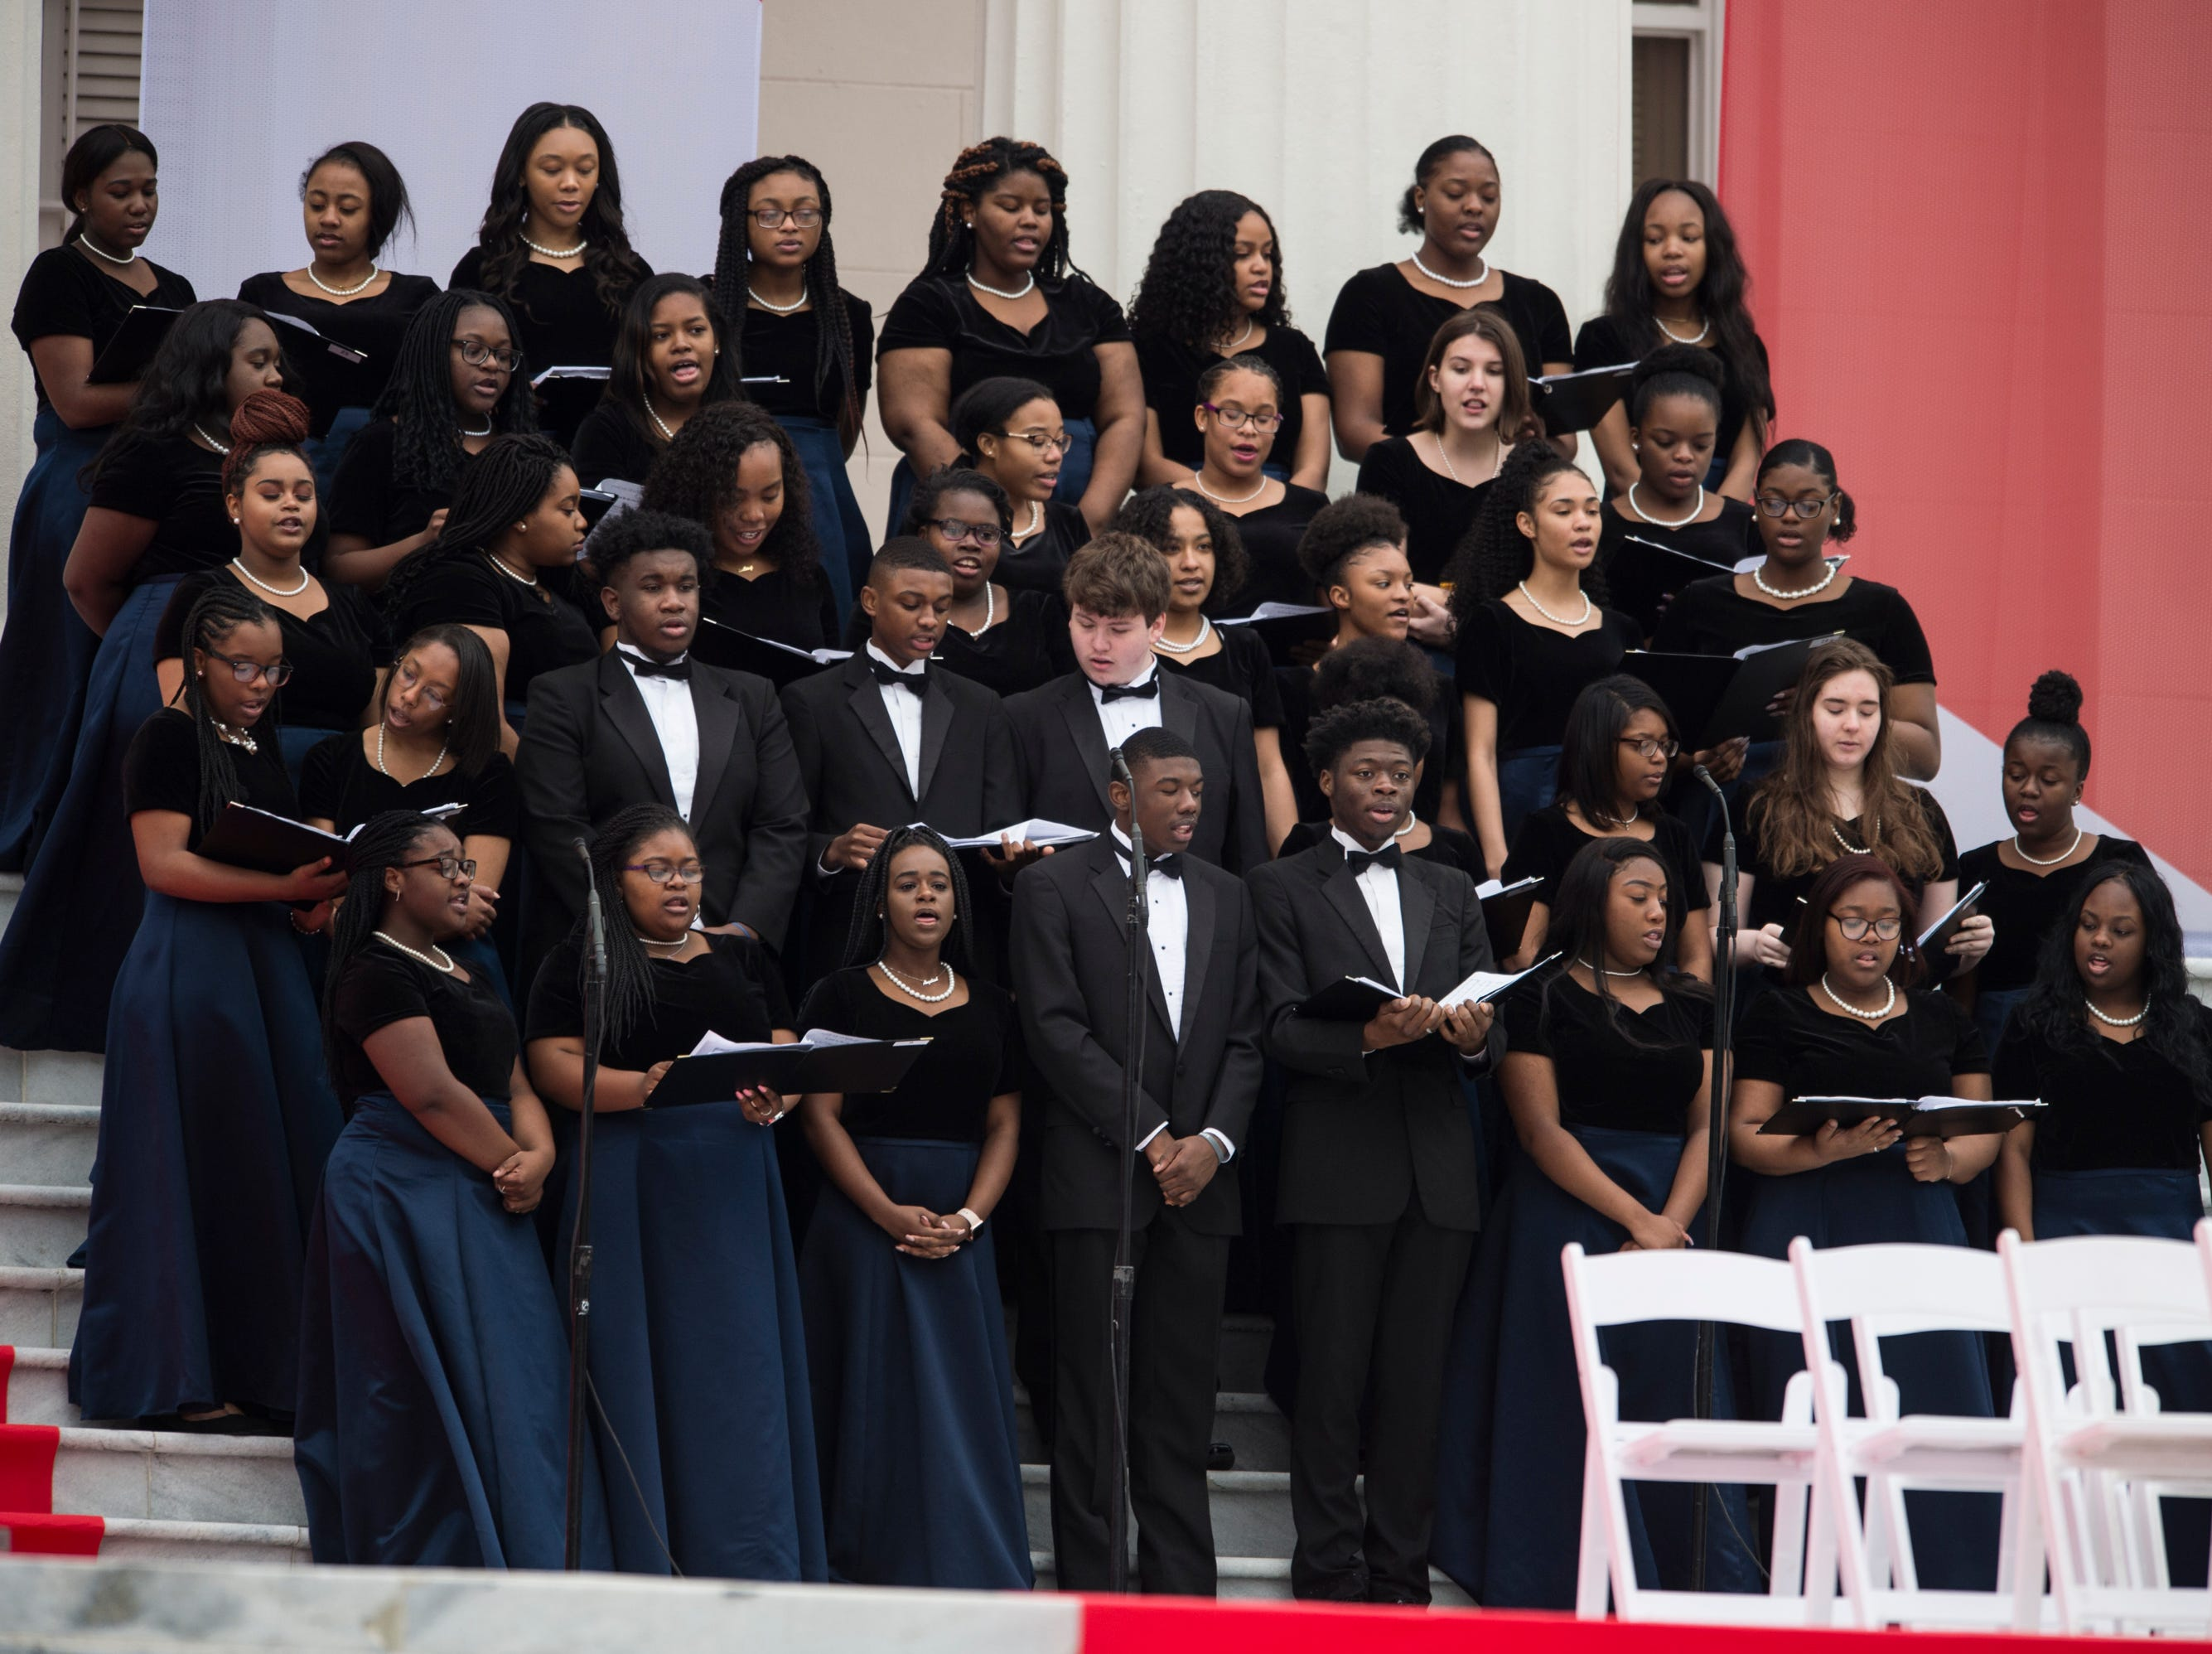 The BTW student choir performs during Inauguration  Day on the steps of the Alabama State Capitol in Montgomery, Ala., on Monday, Jan. 14, 2019.